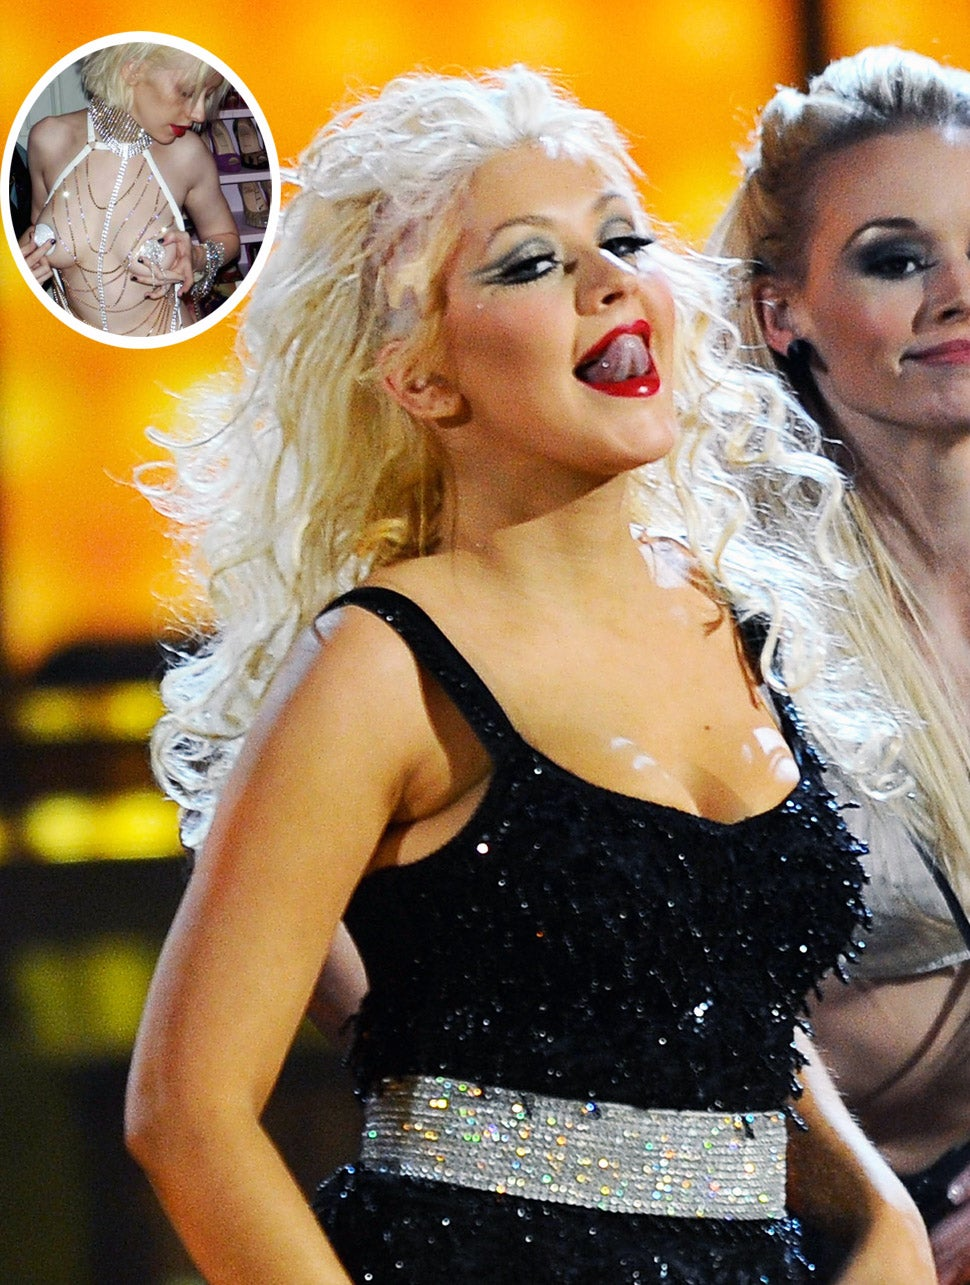 Nude pictures of christina aguilera photo 375